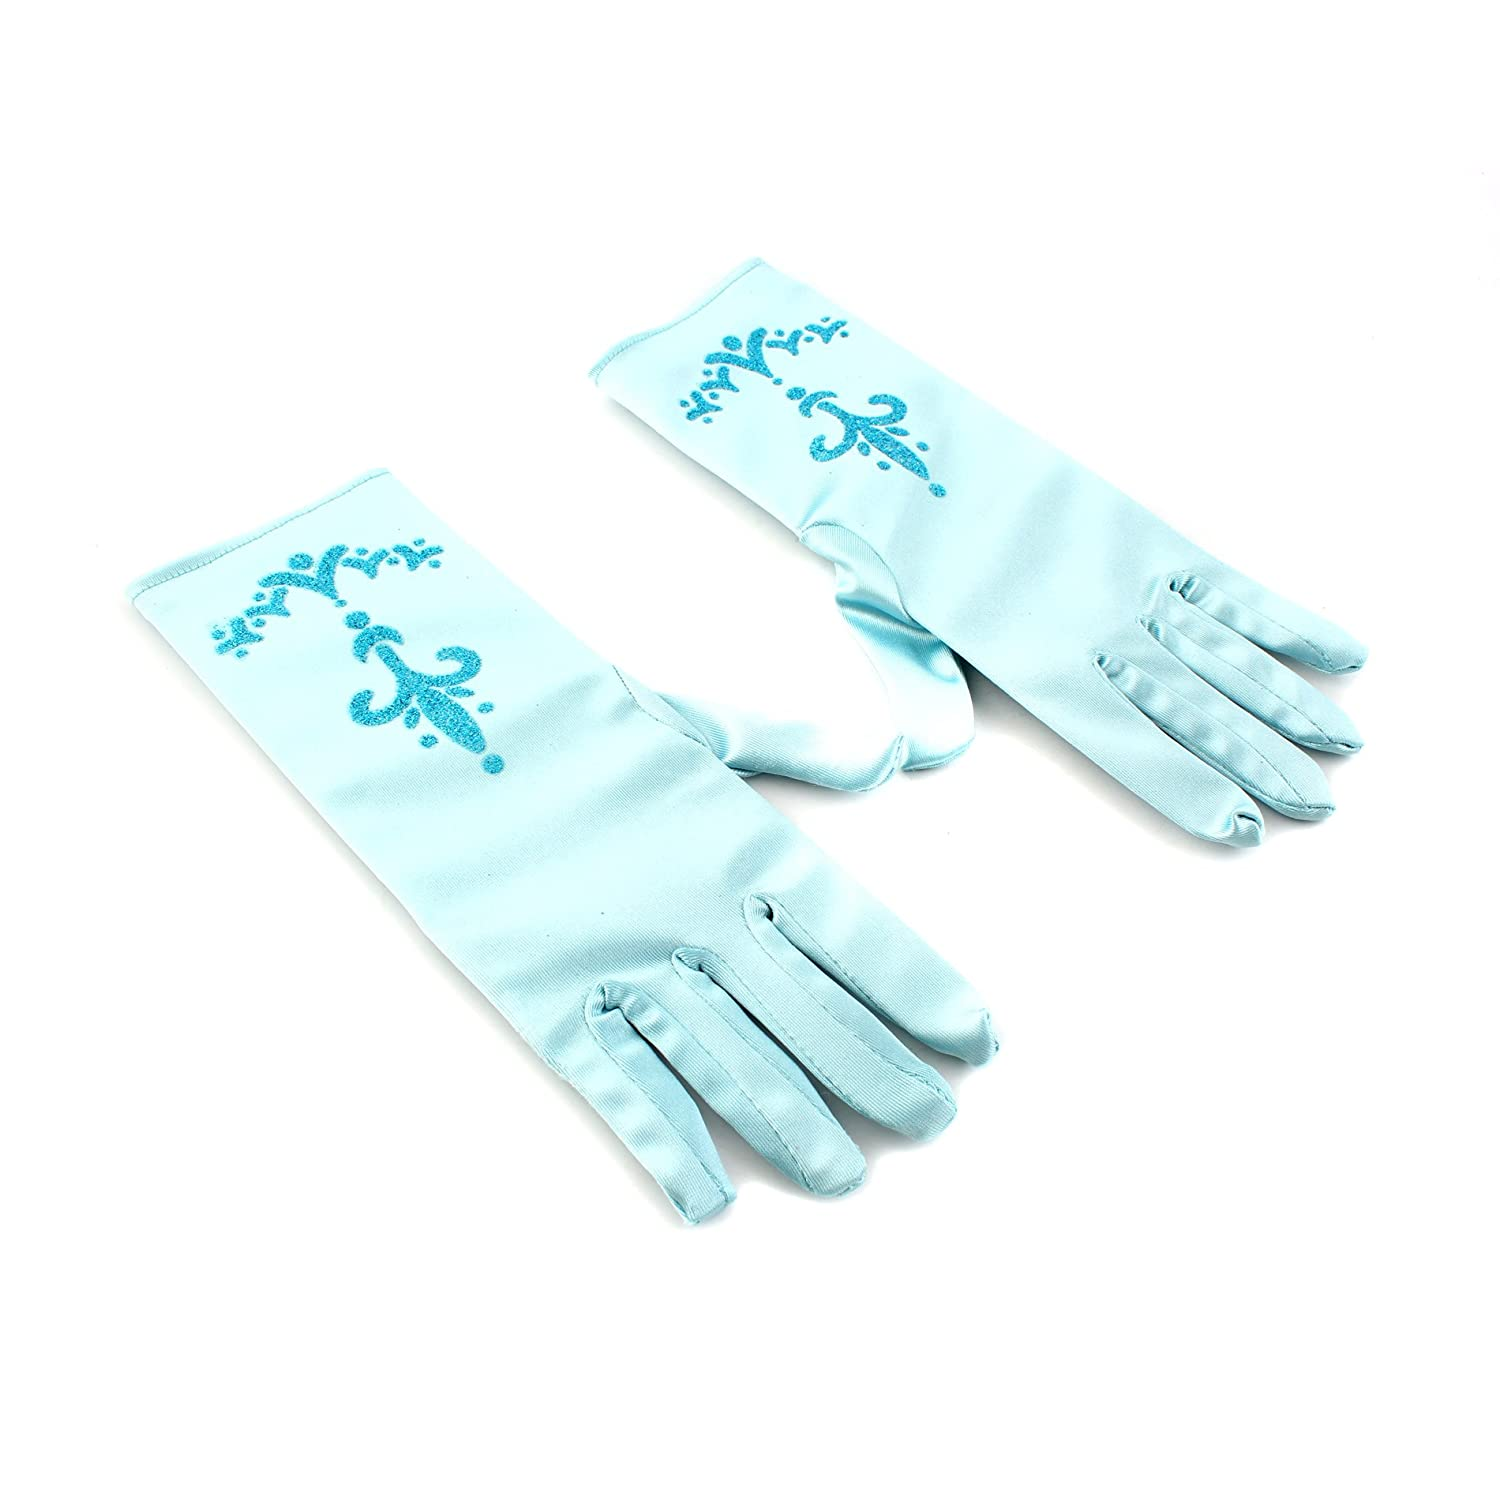 1 Pair Girls Princess Queen Gloves Cosplay Halloween Party Costume, Light Blue IDS Home